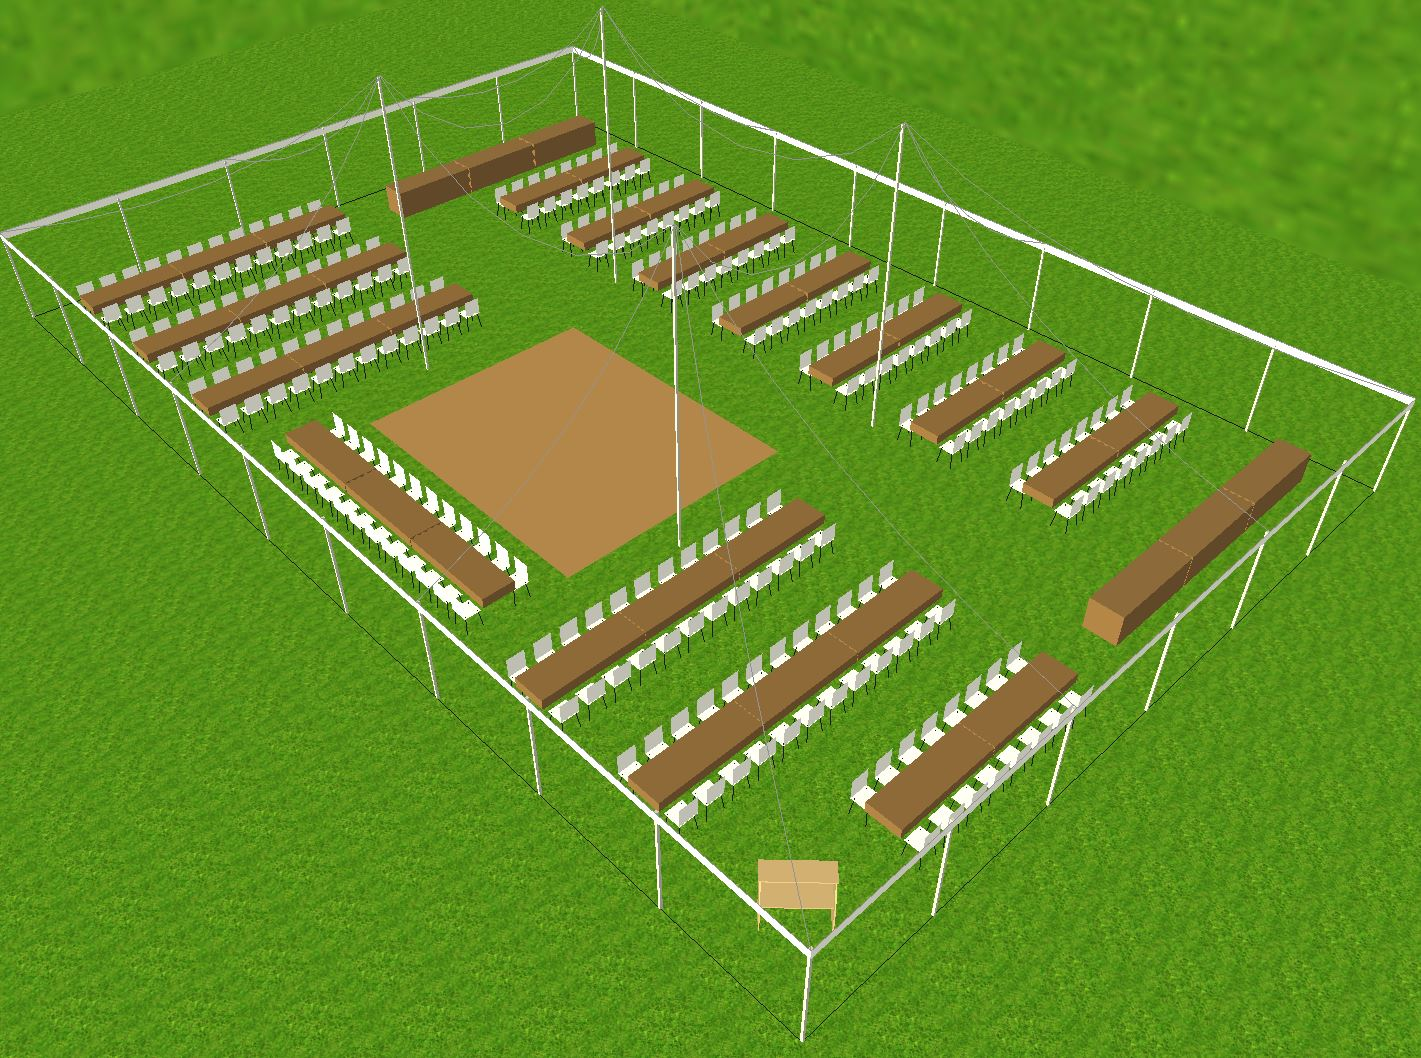 60x90 tent Large seating layout